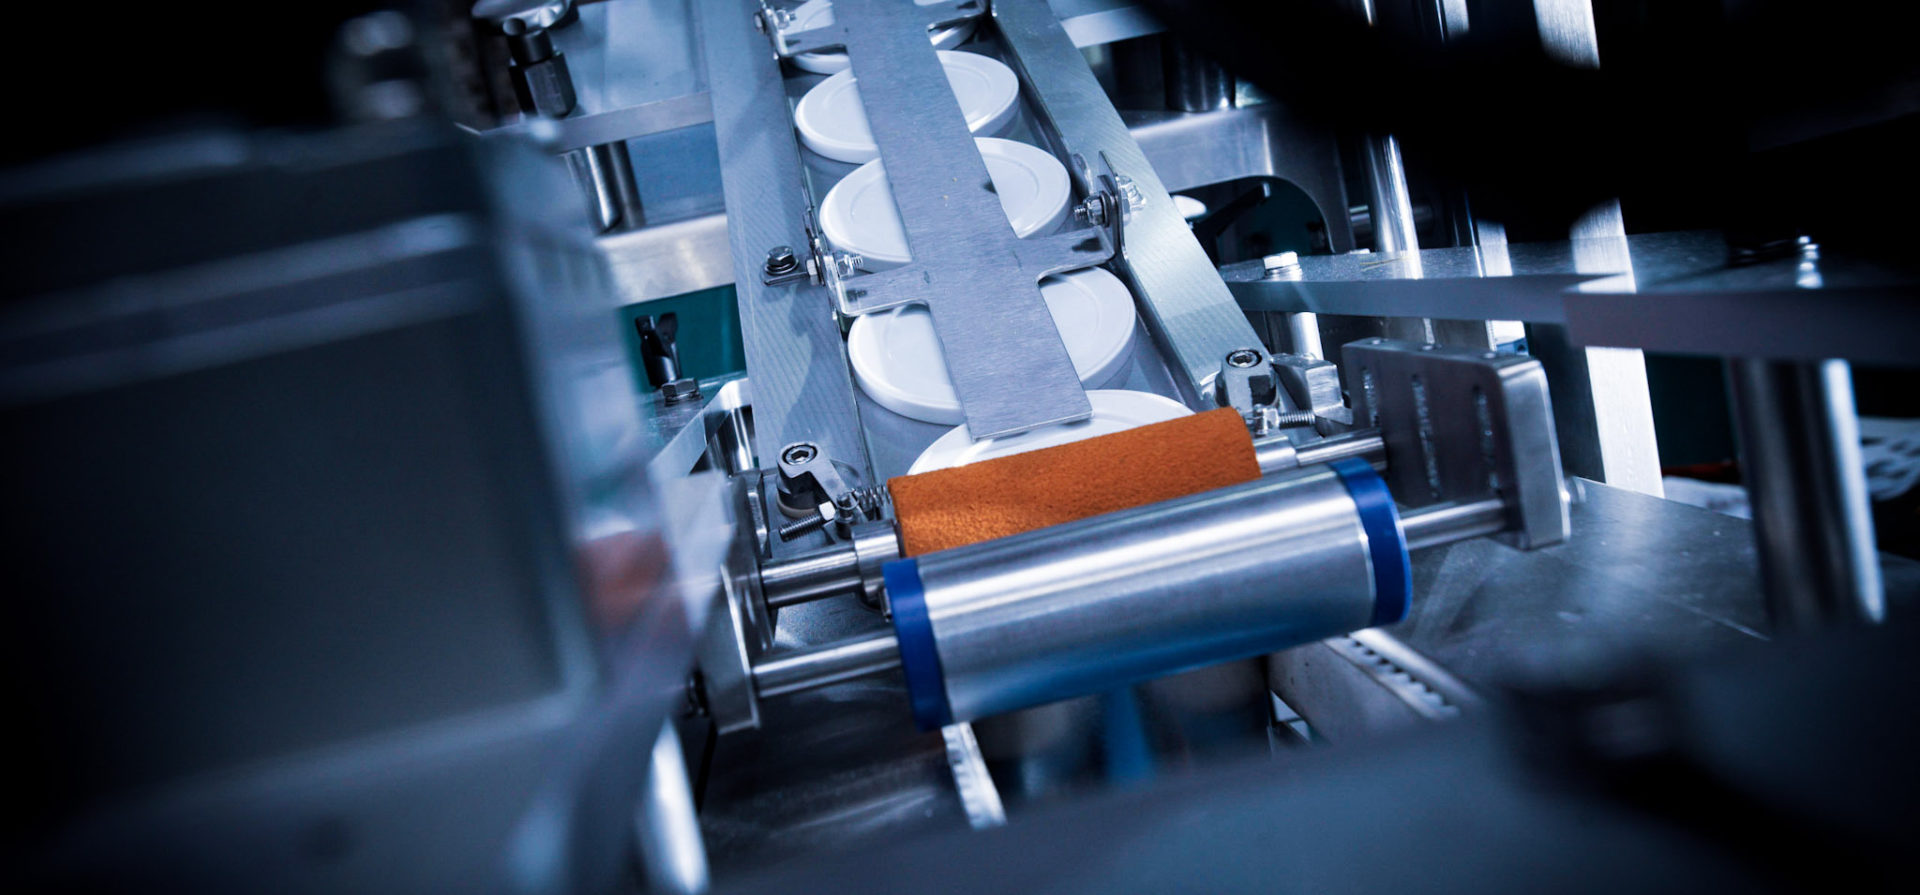 Lidding Automation - Automated Sorting Systems | Euroflow Automation Ltd